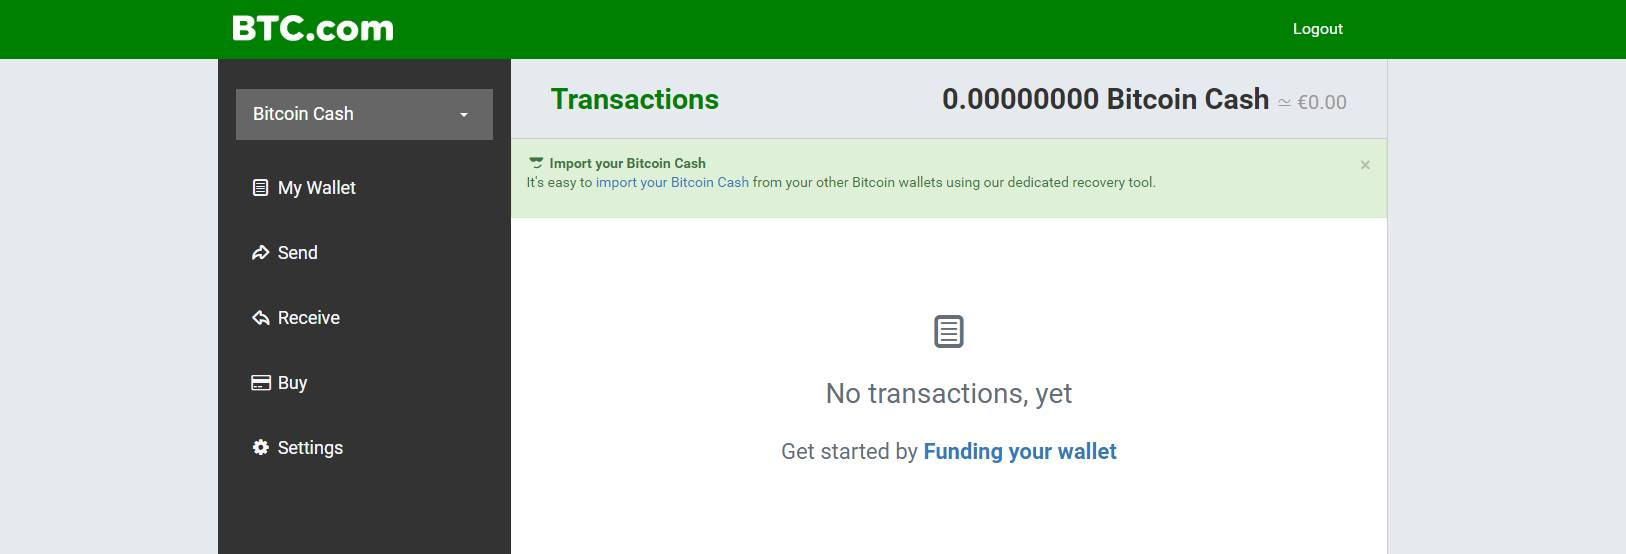 Easy Steps on How to Buy Bitcoin Cash